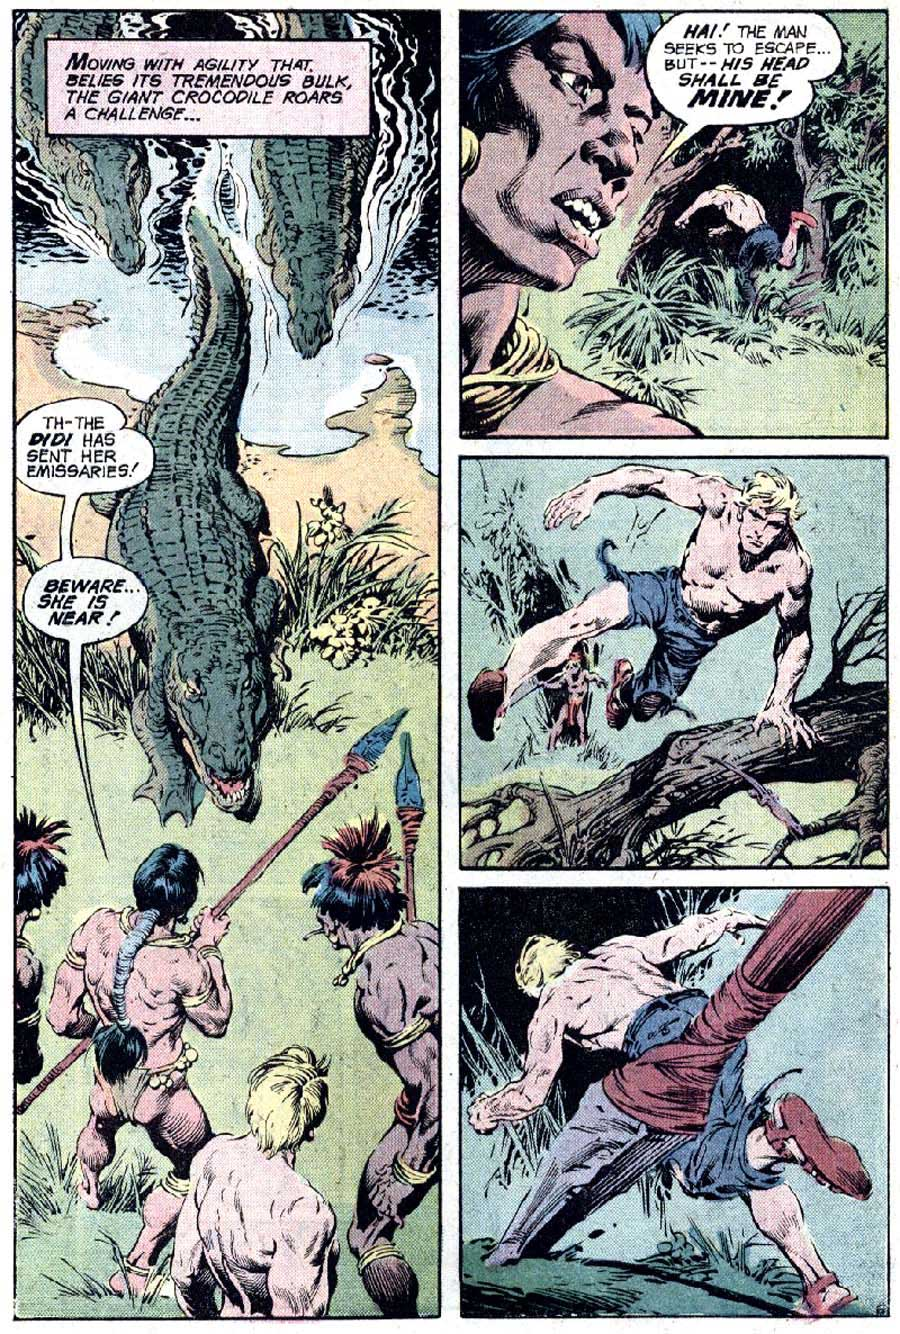 Rima the Jungle Girl v1 #4 dc bronze age comic book page art by Nestor Redondo